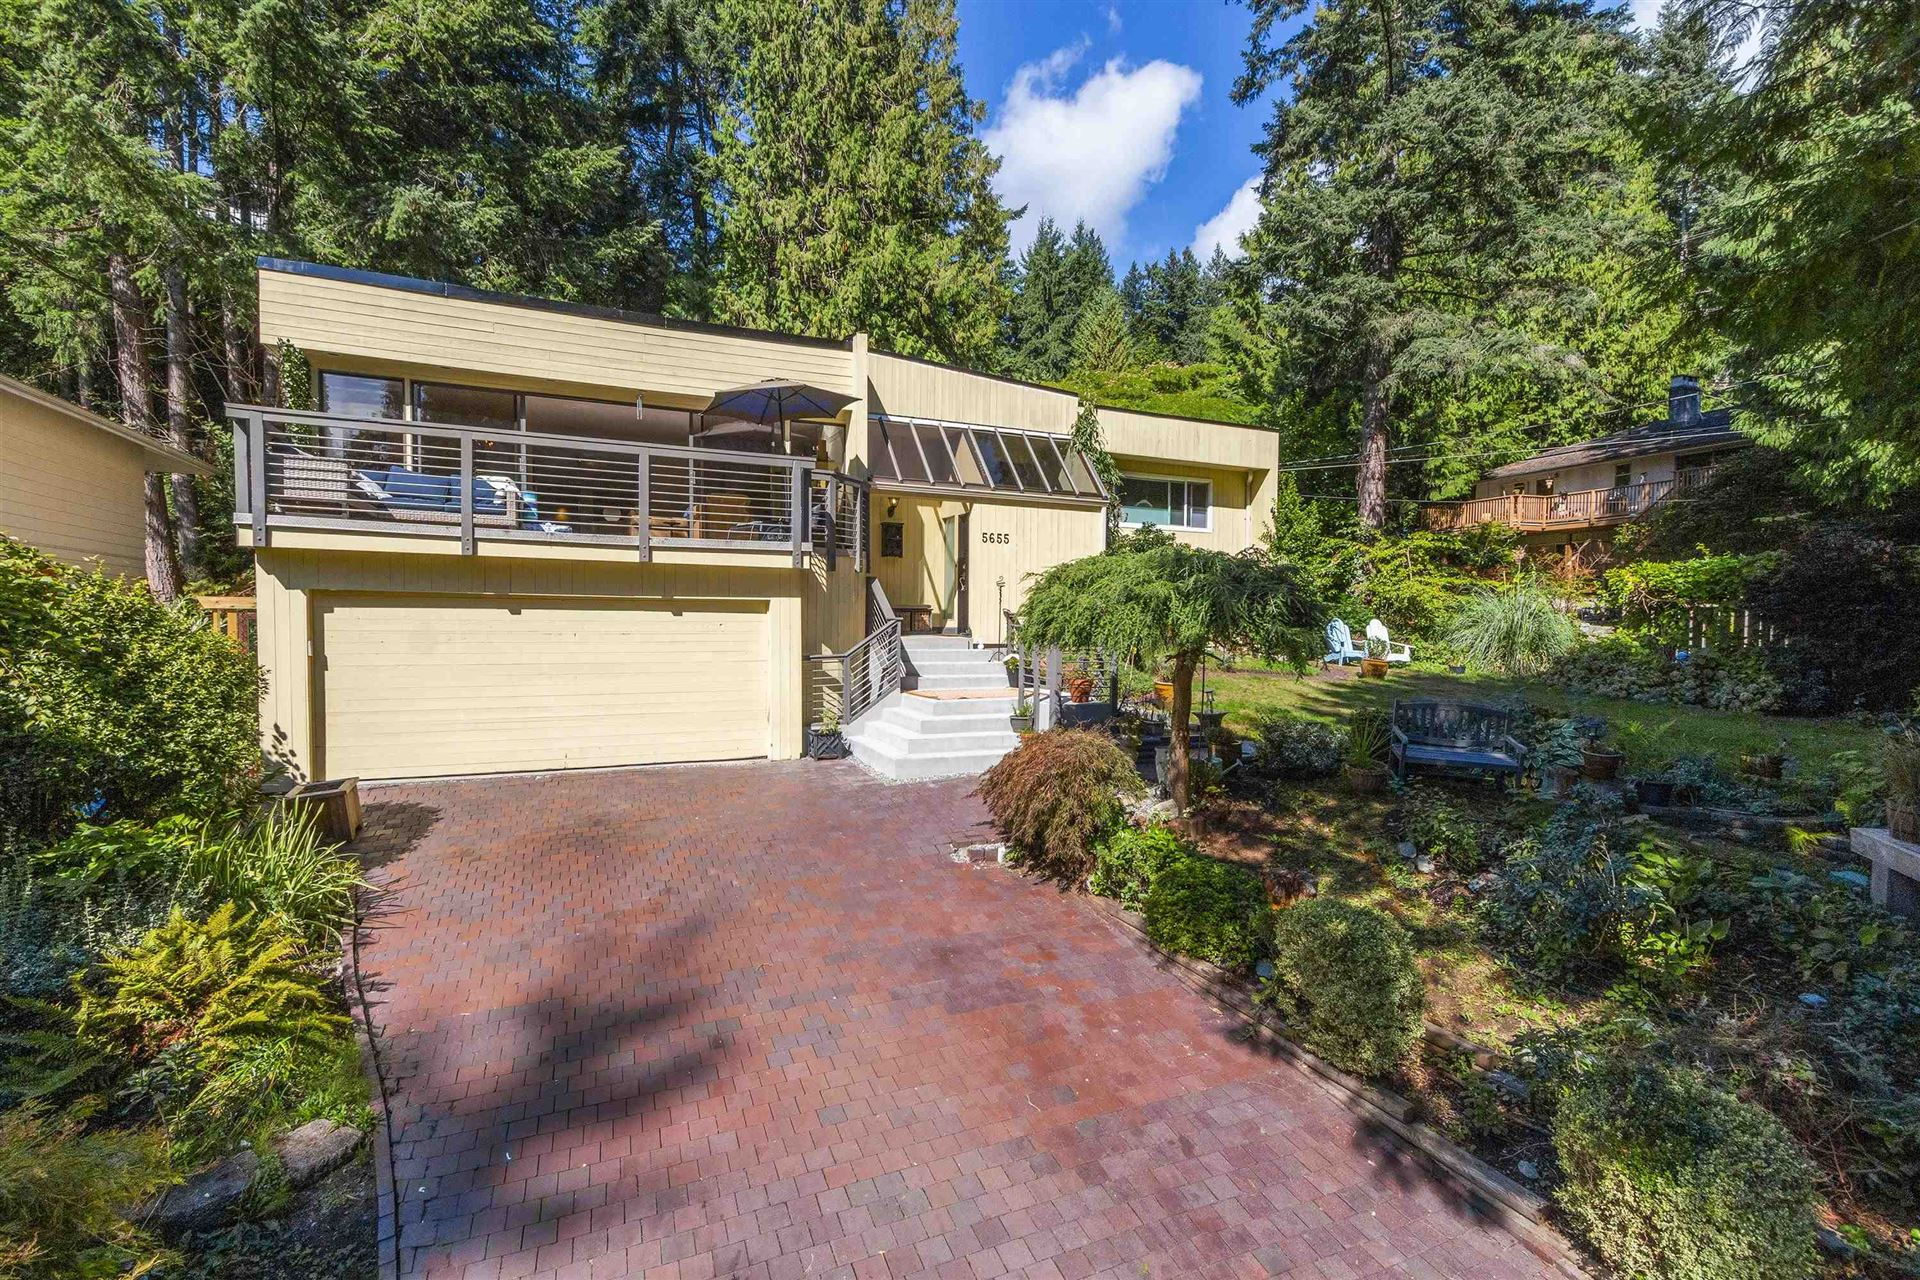 Photo of 5655 WESTHAVEN ROAD, West Vancouver, BC V7W 1T7 (MLS # R2618043)